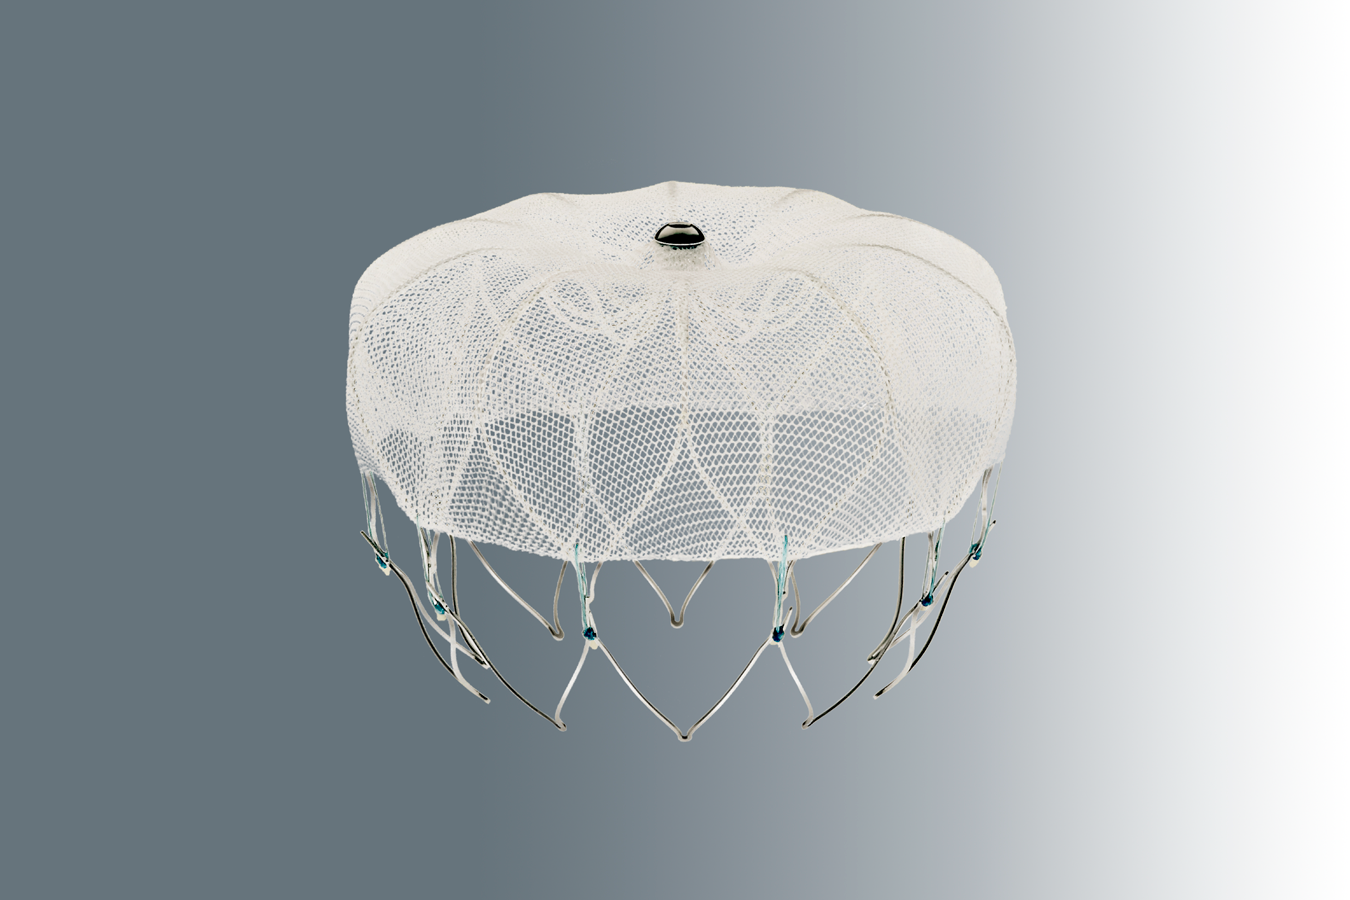 WATCHMAN LEFT ATRIAL APPENDAGE CLOSURE DEVICE